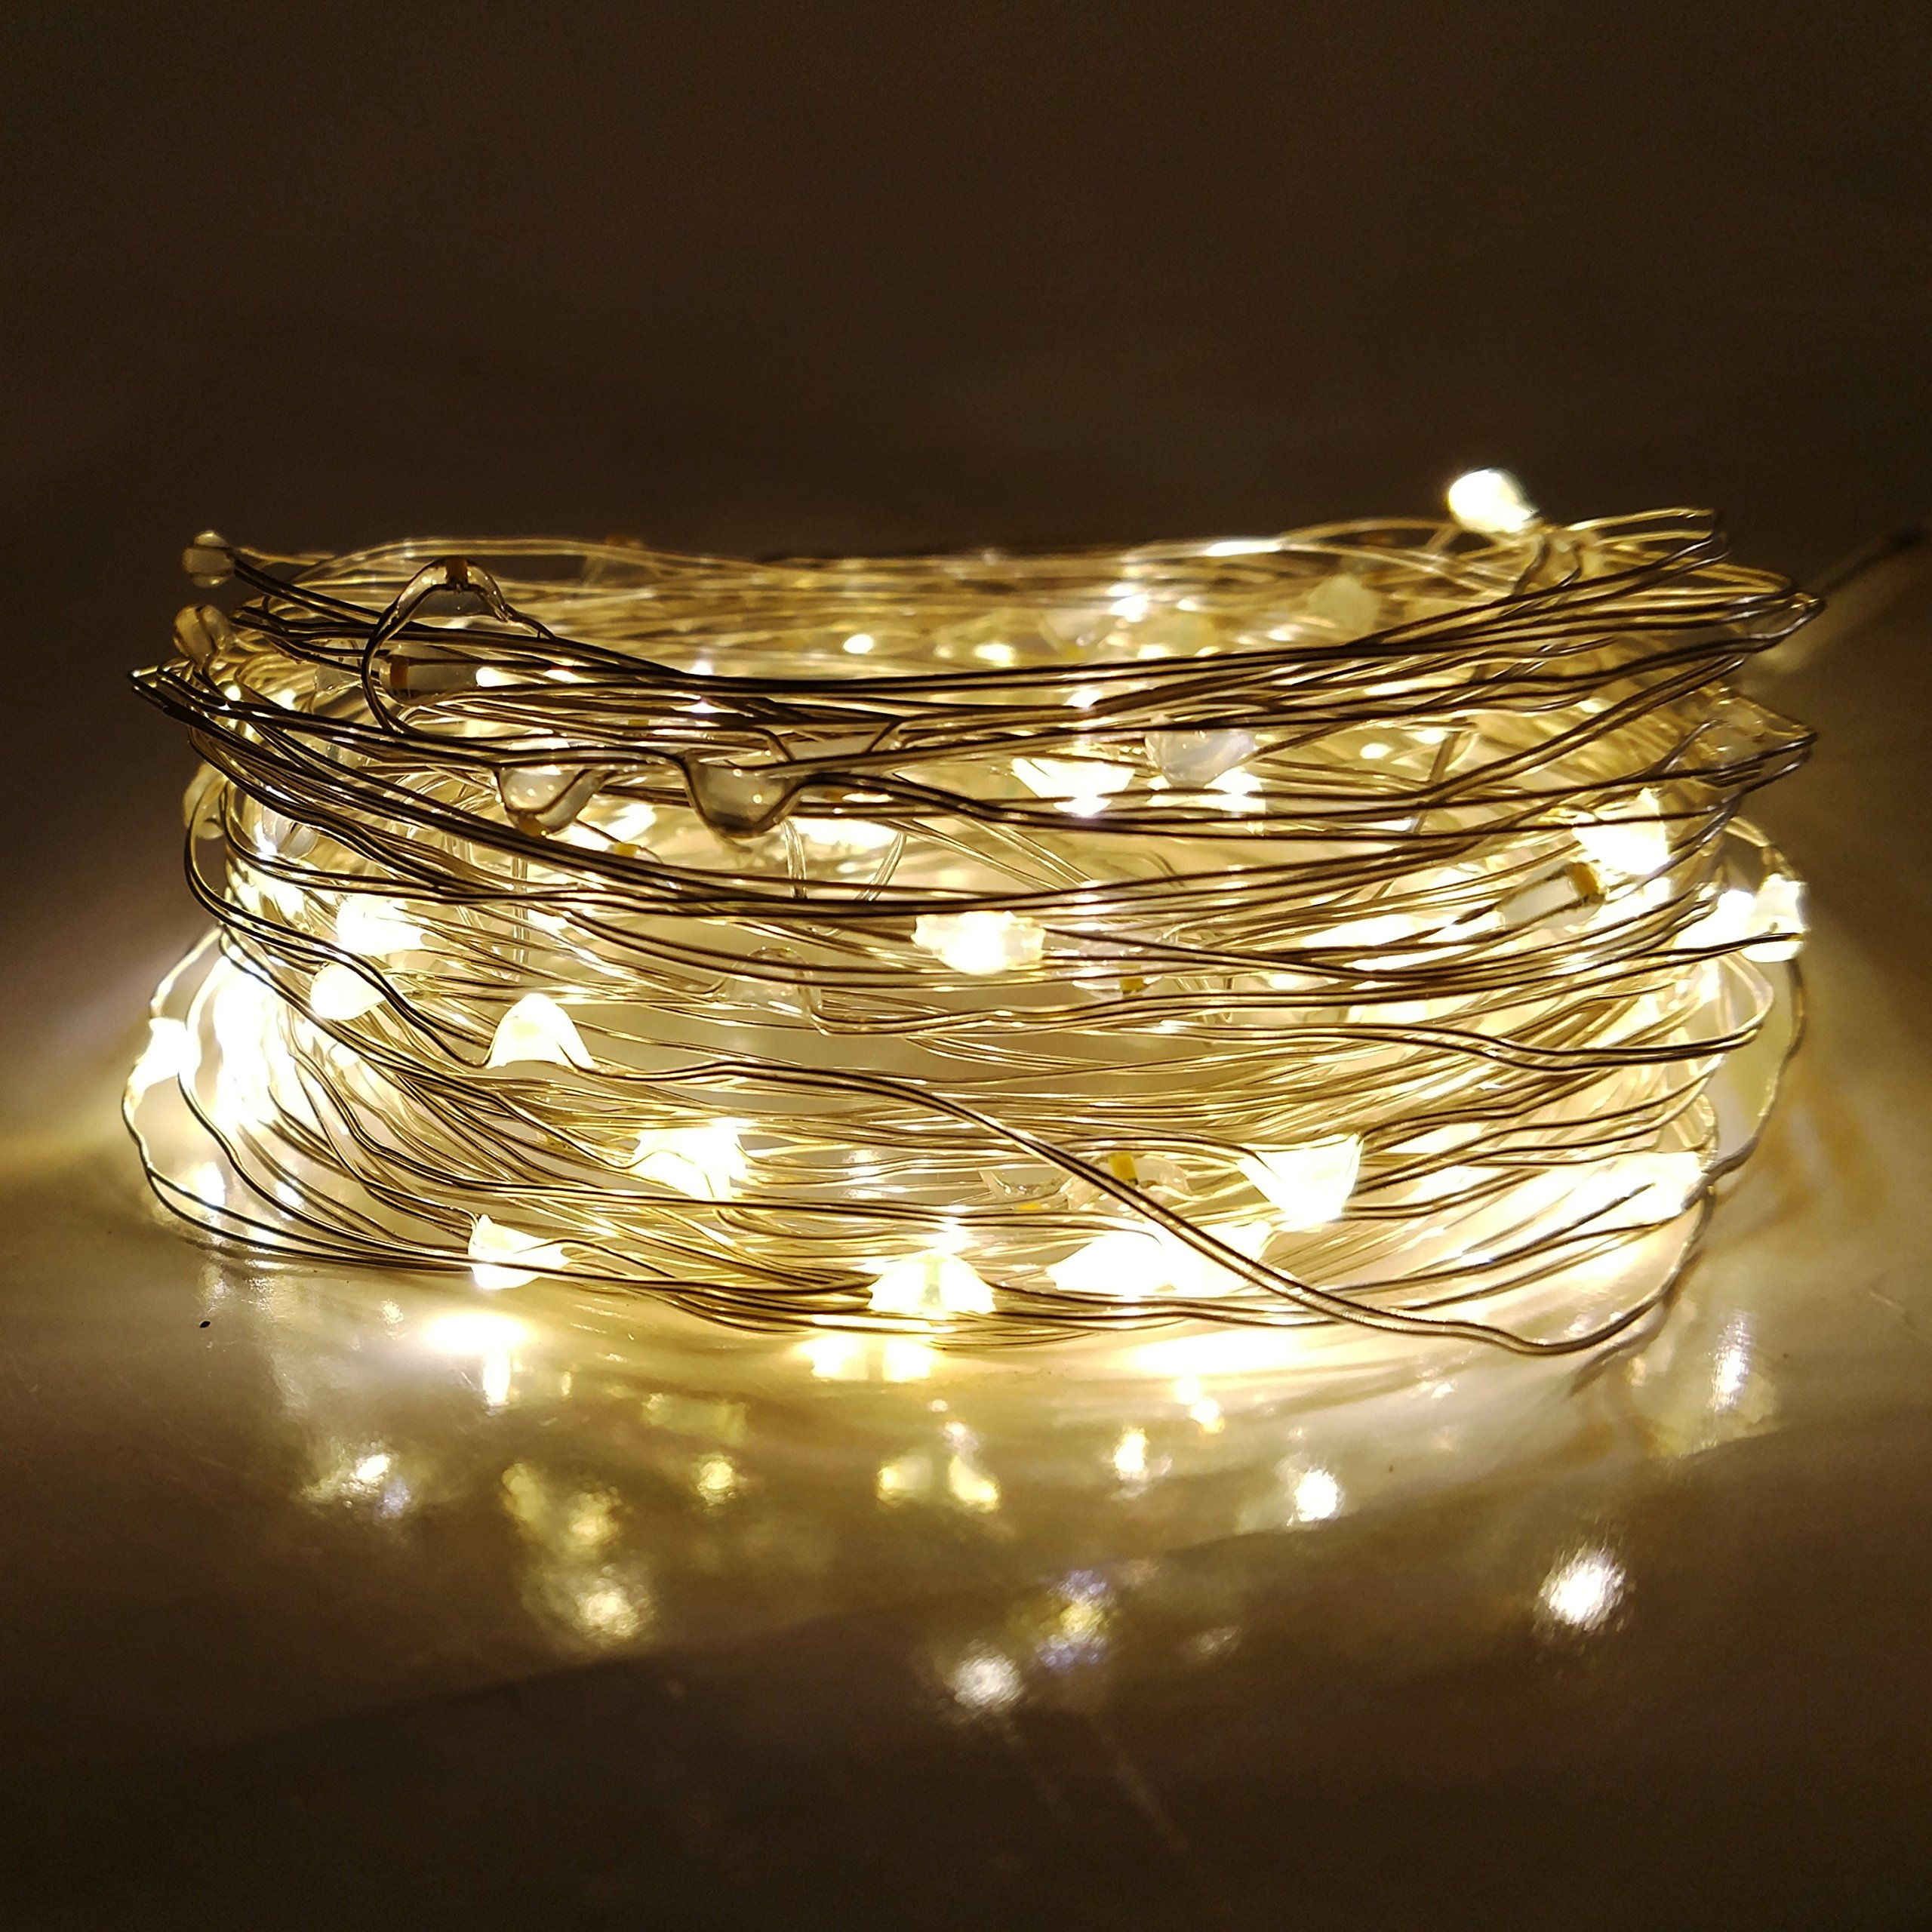 Hometown Evolution, Inc. Solar Powered Micro LED String Lights - 100 LED, 33 Feet - Warm White, 8 Modes, Outdoor Waterproof for Gardens, Patios, Vases, Home, Parties and more